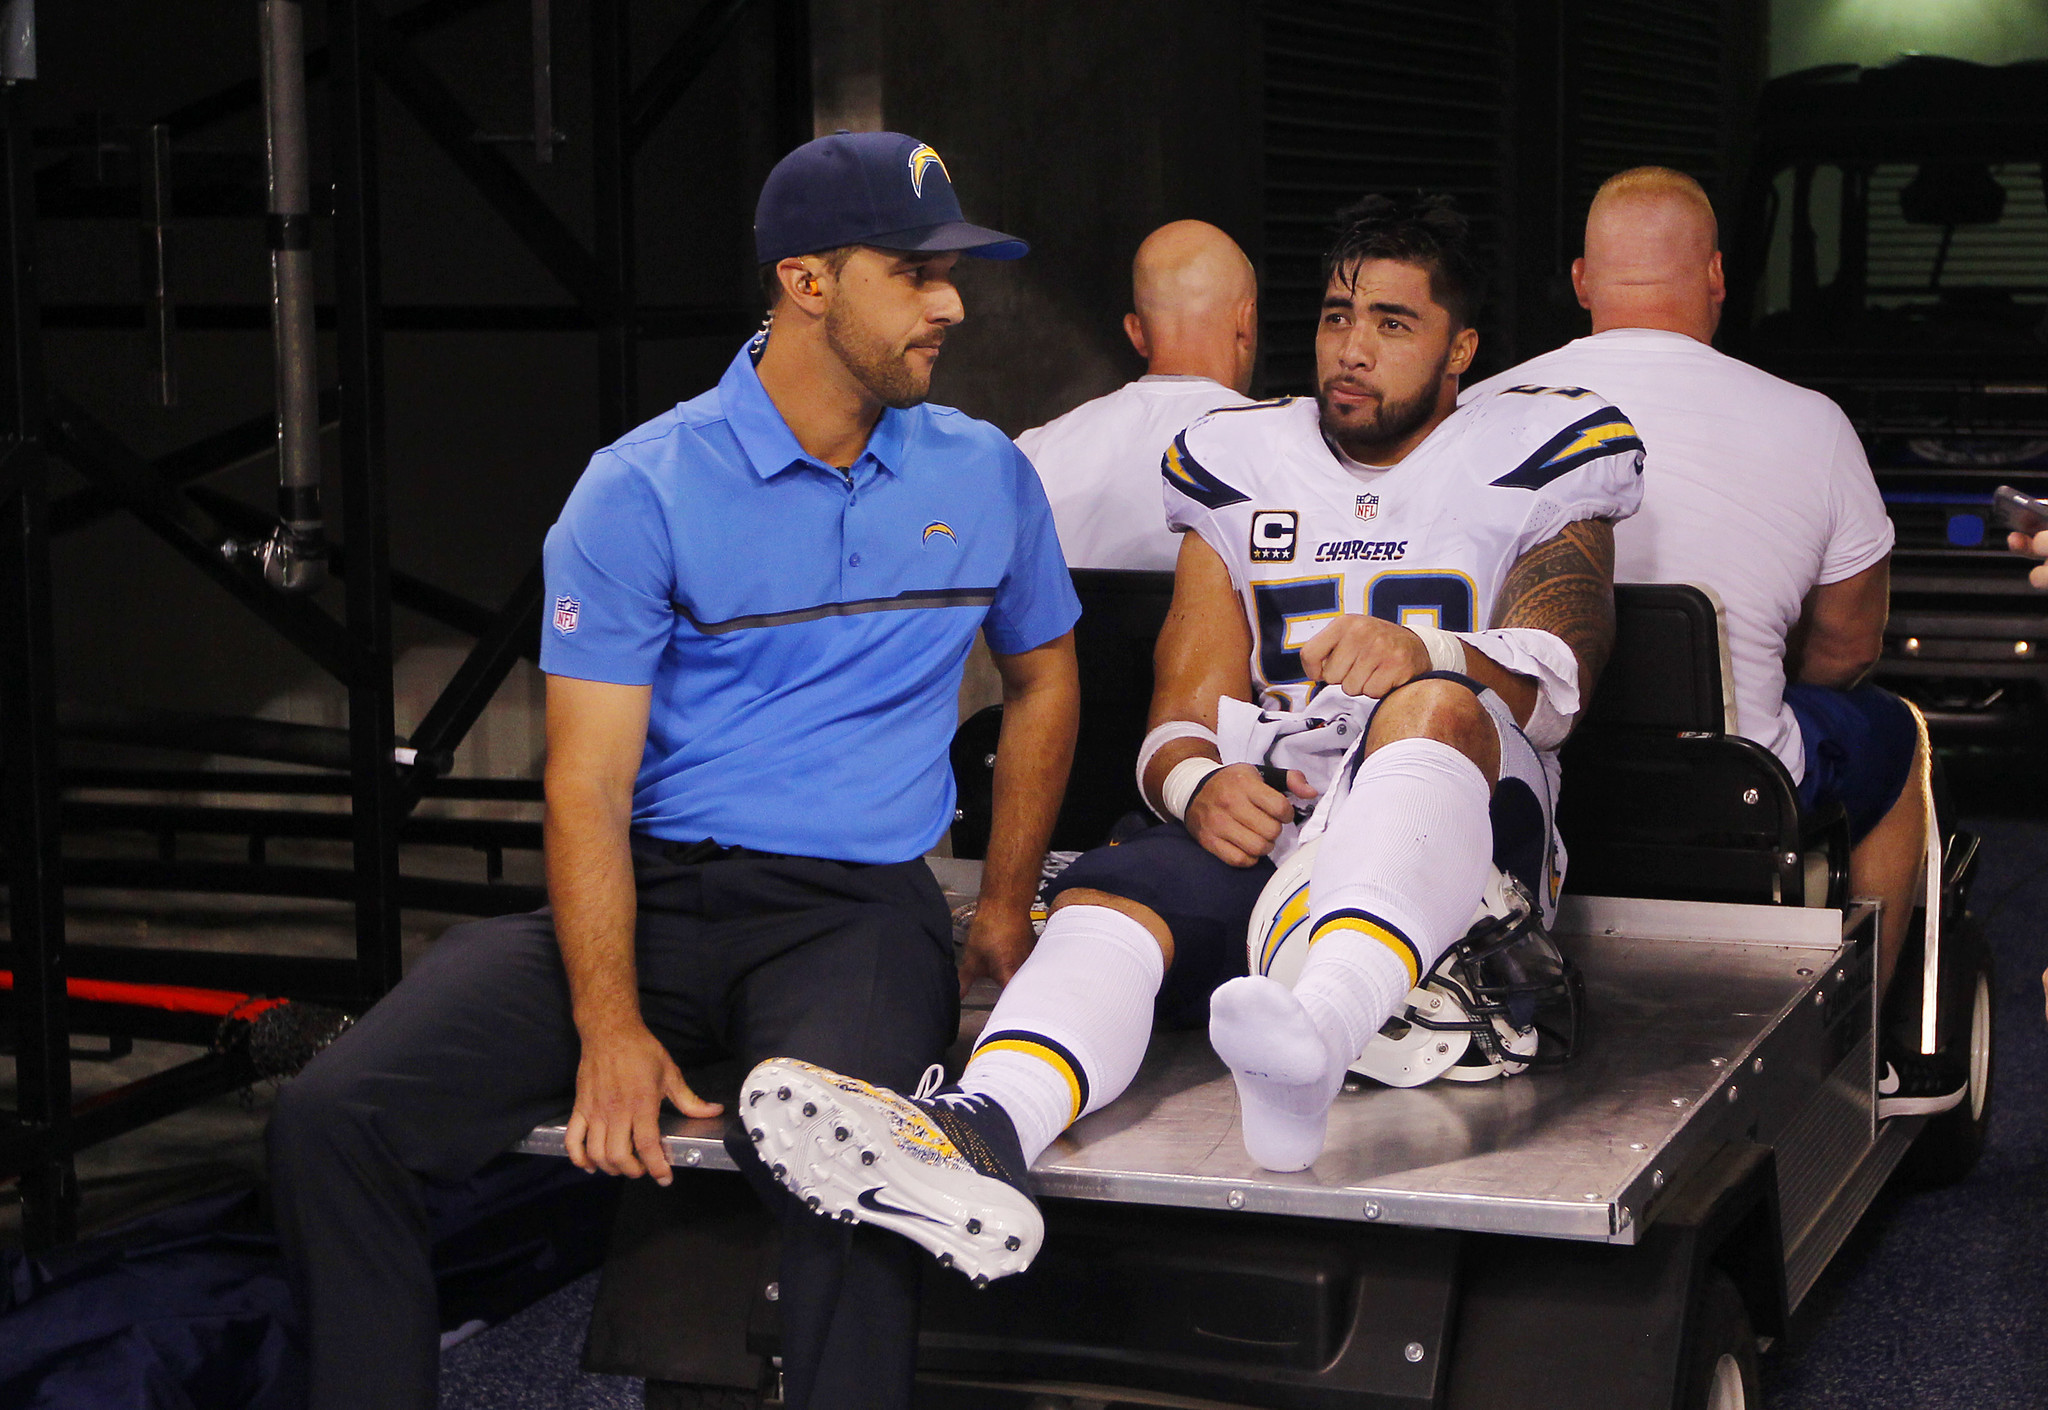 Sd-sp-chargers-injuries-acl-achilles-manti-teo-20160927